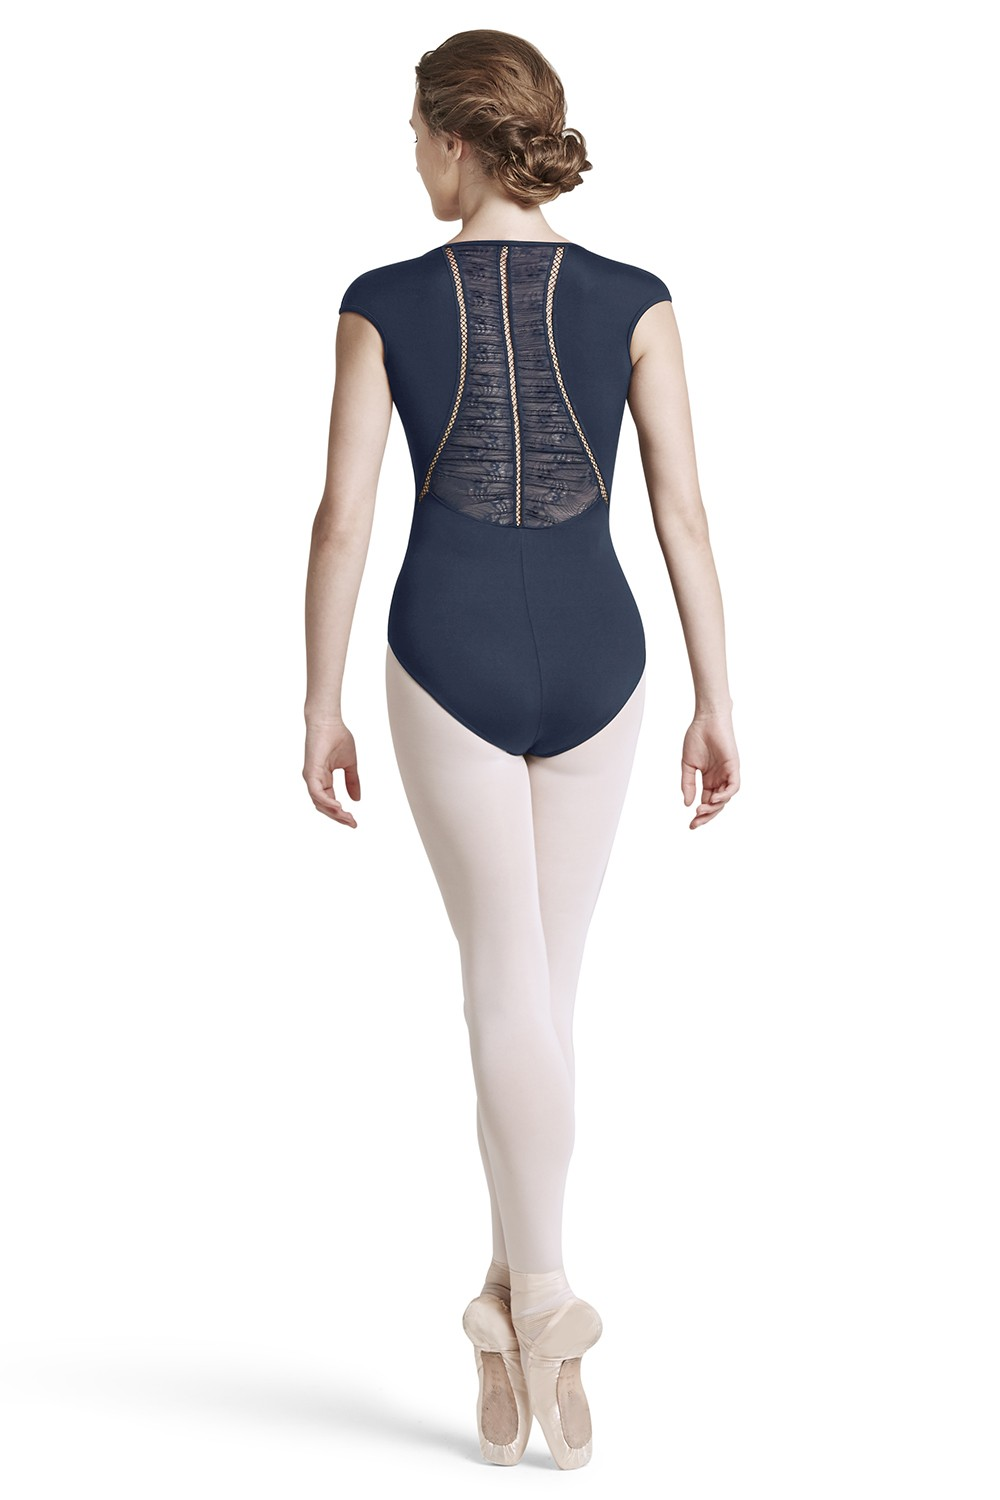 Womens Short Sleeve Leotards